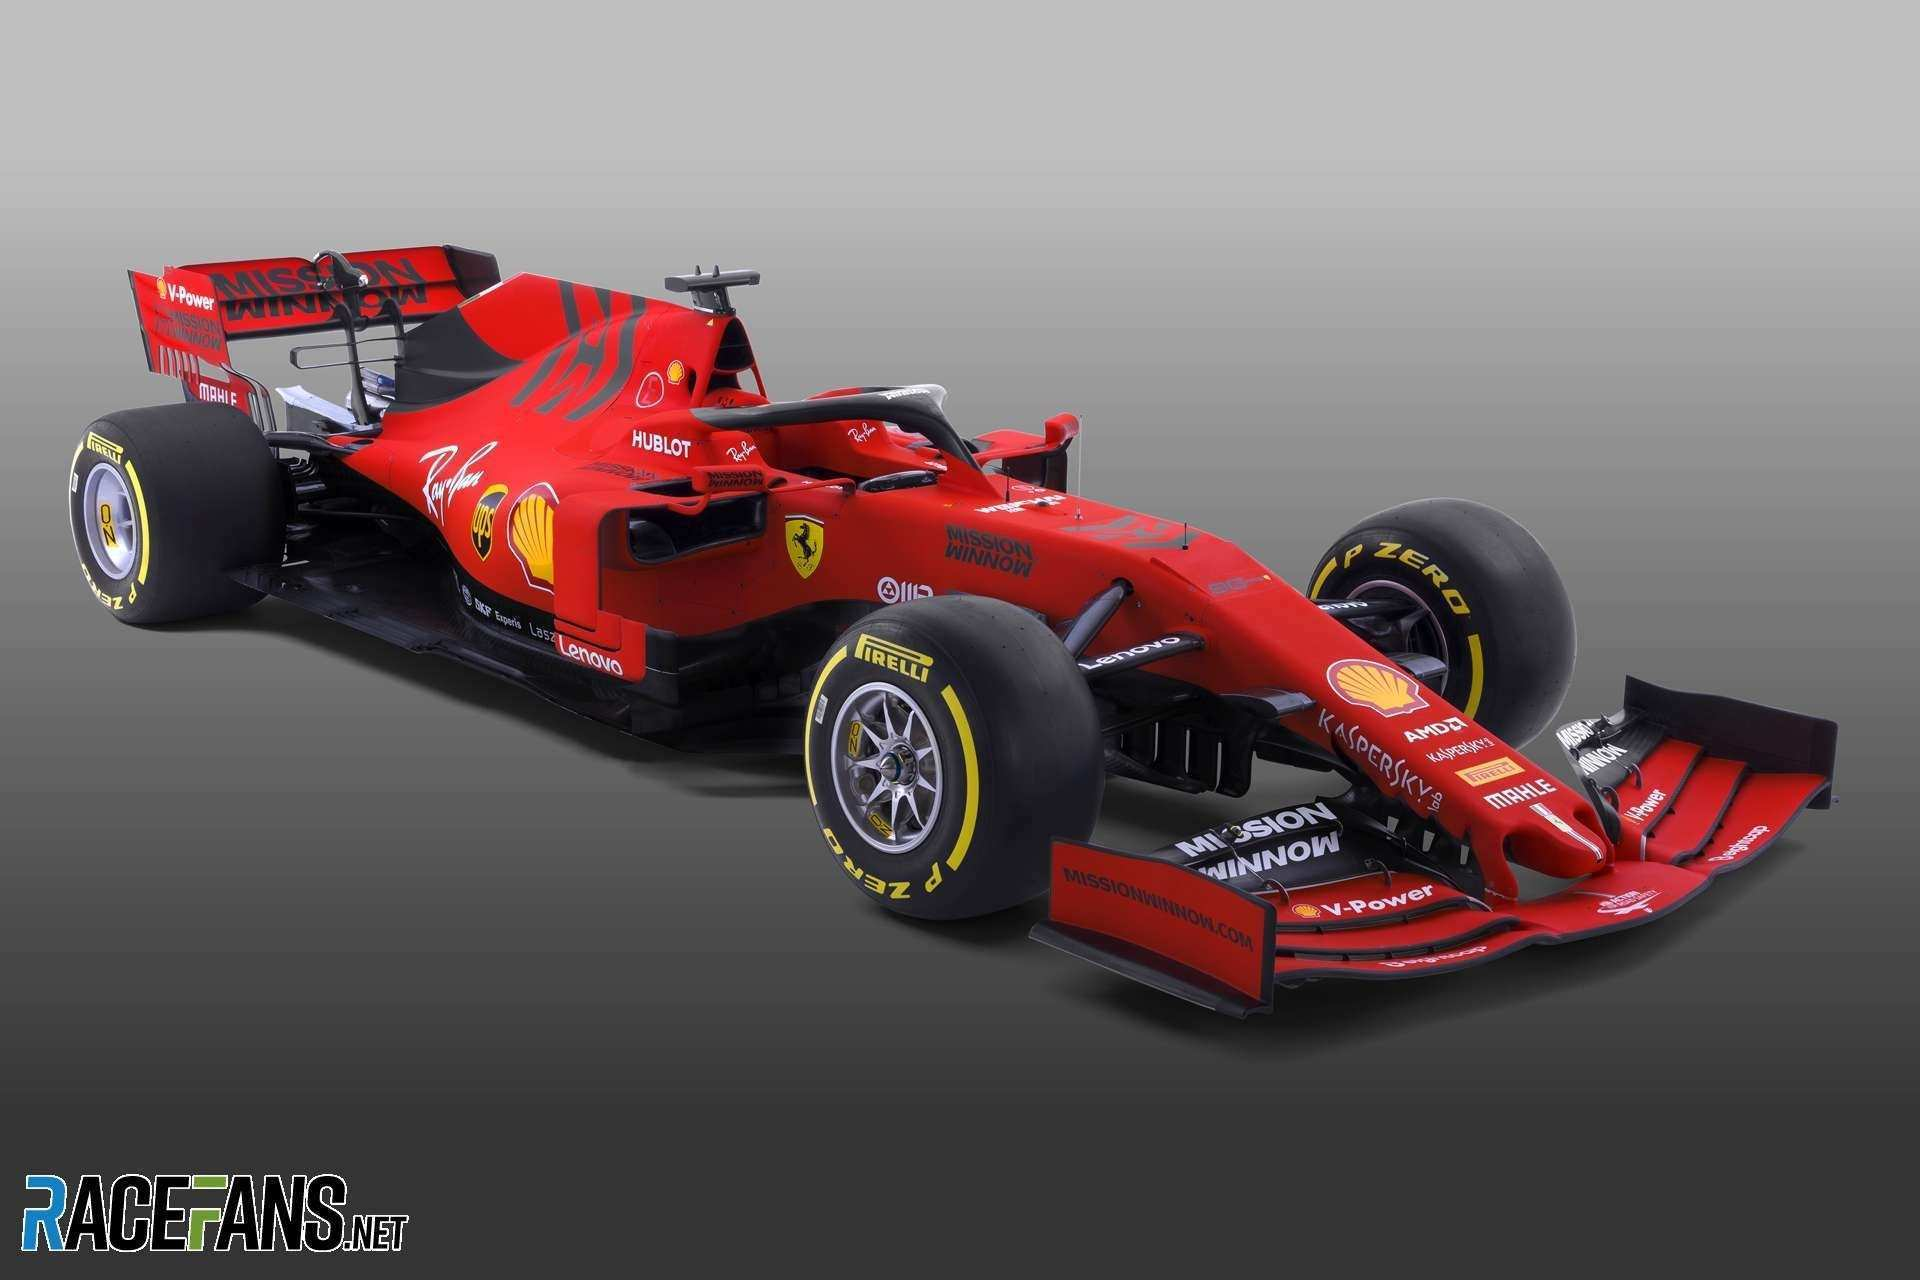 58 All New The Who Are Ferrari Drivers For 2019 Exterior And Interior Review Images for The Who Are Ferrari Drivers For 2019 Exterior And Interior Review